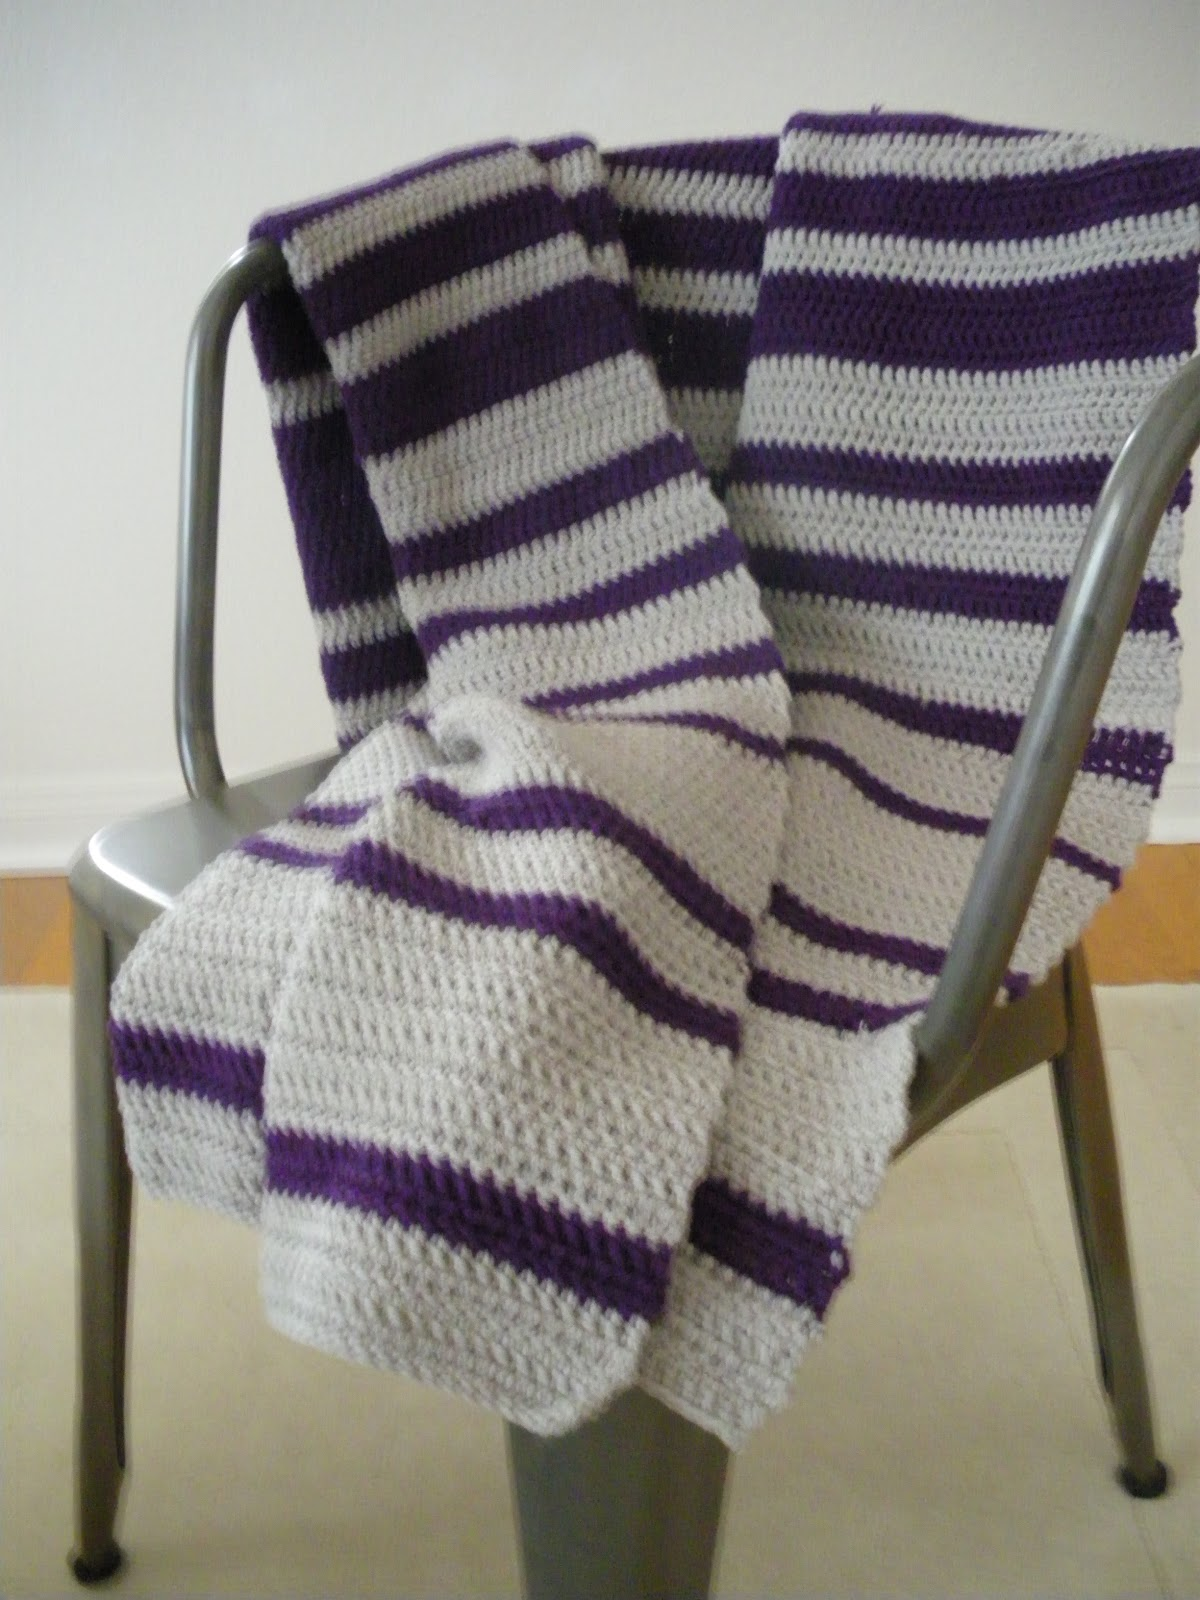 The Scarf And Stripe Striped Crochet Blanket